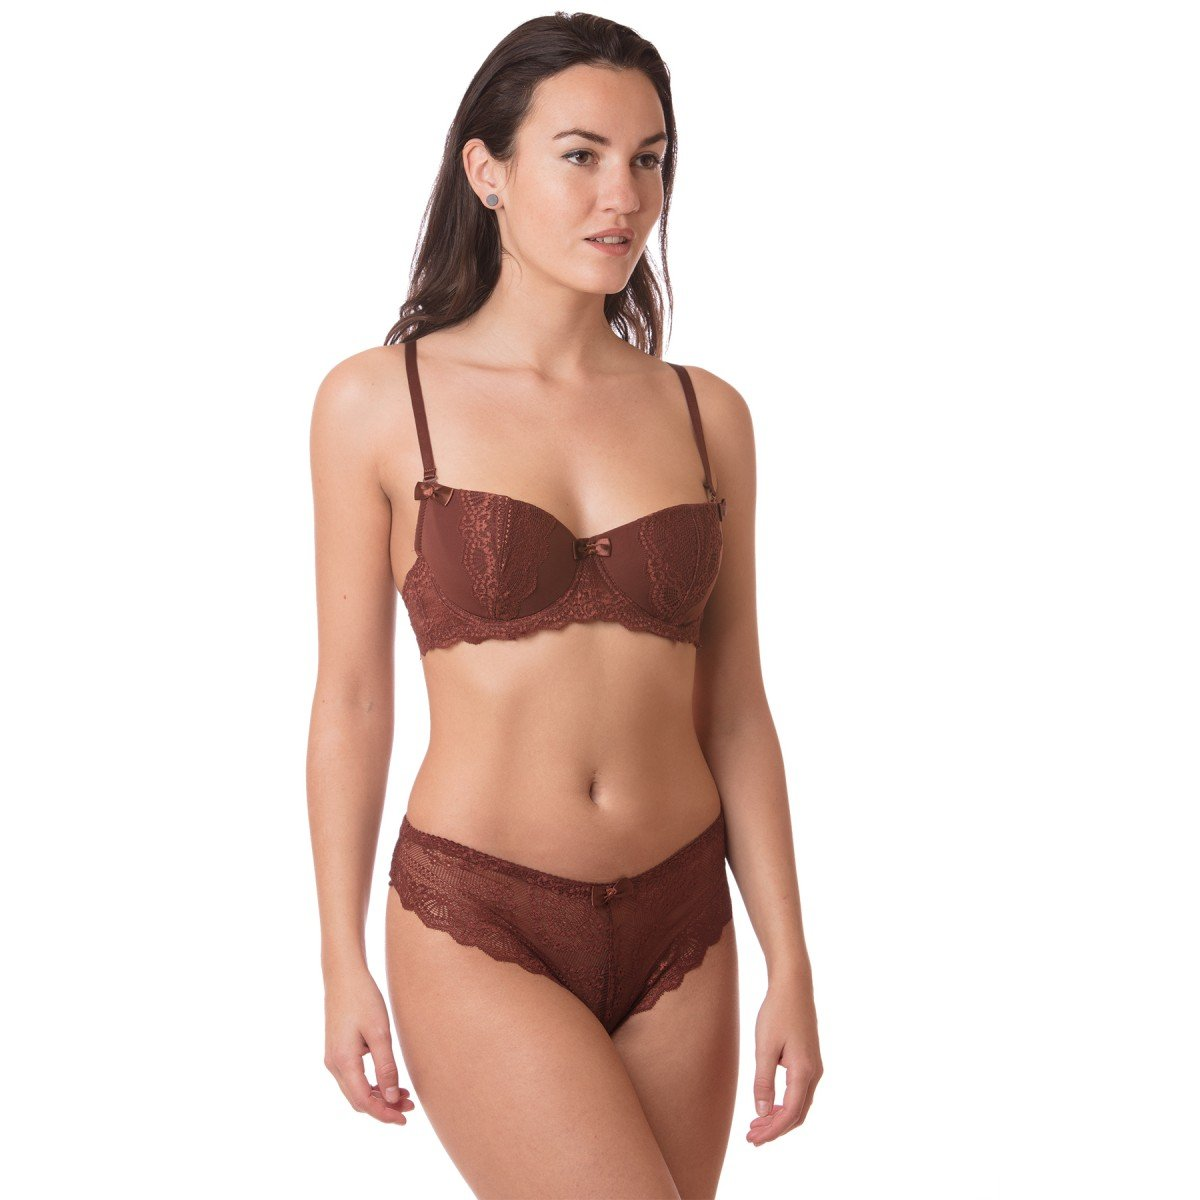 Donna Skys Lingerie Completo Intimo